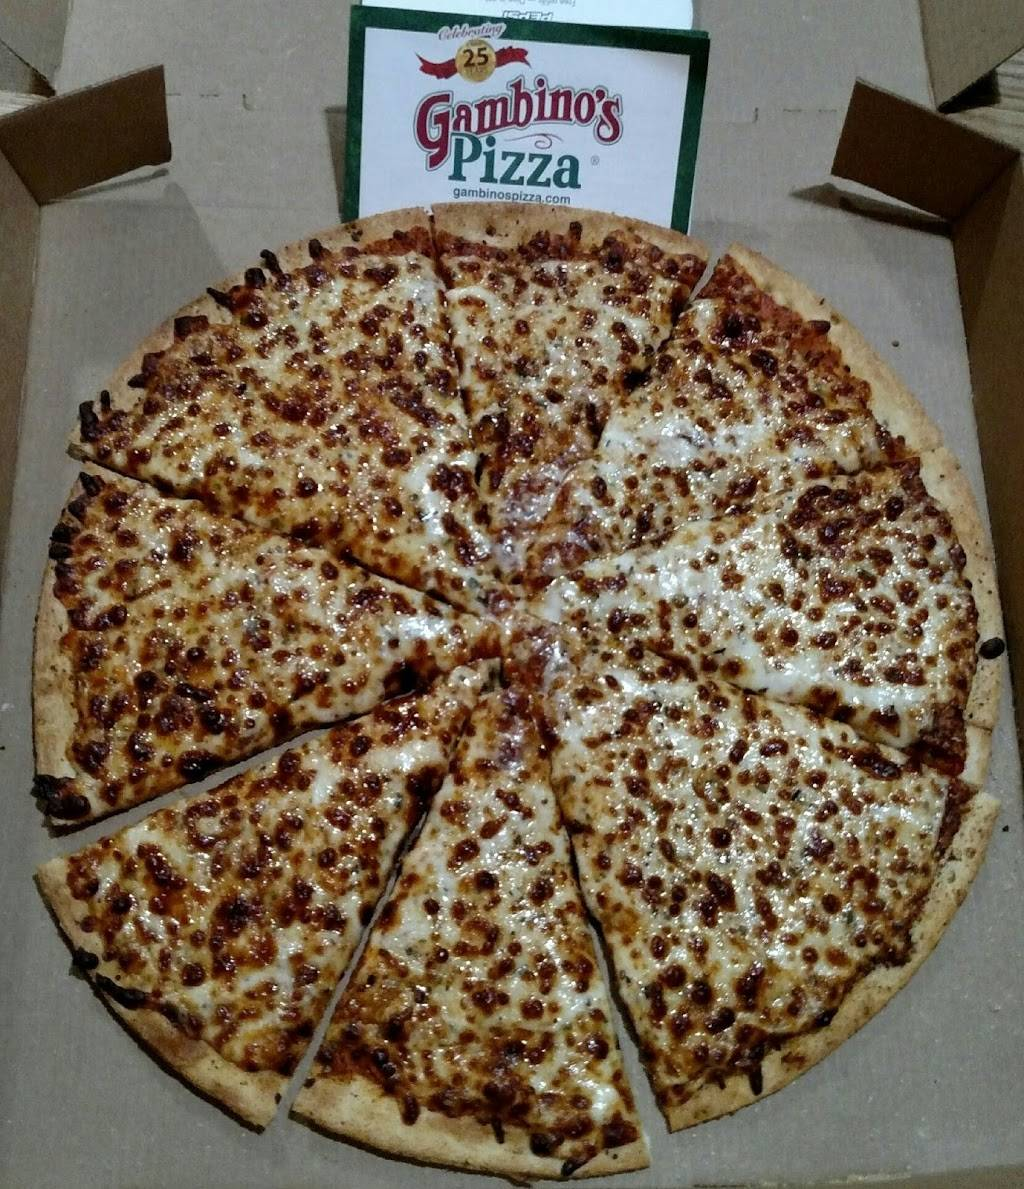 Gambinos Pizza | meal delivery | 616 E Main St, Gardner, KS 66030, USA | 9138844444 OR +1 913-884-4444